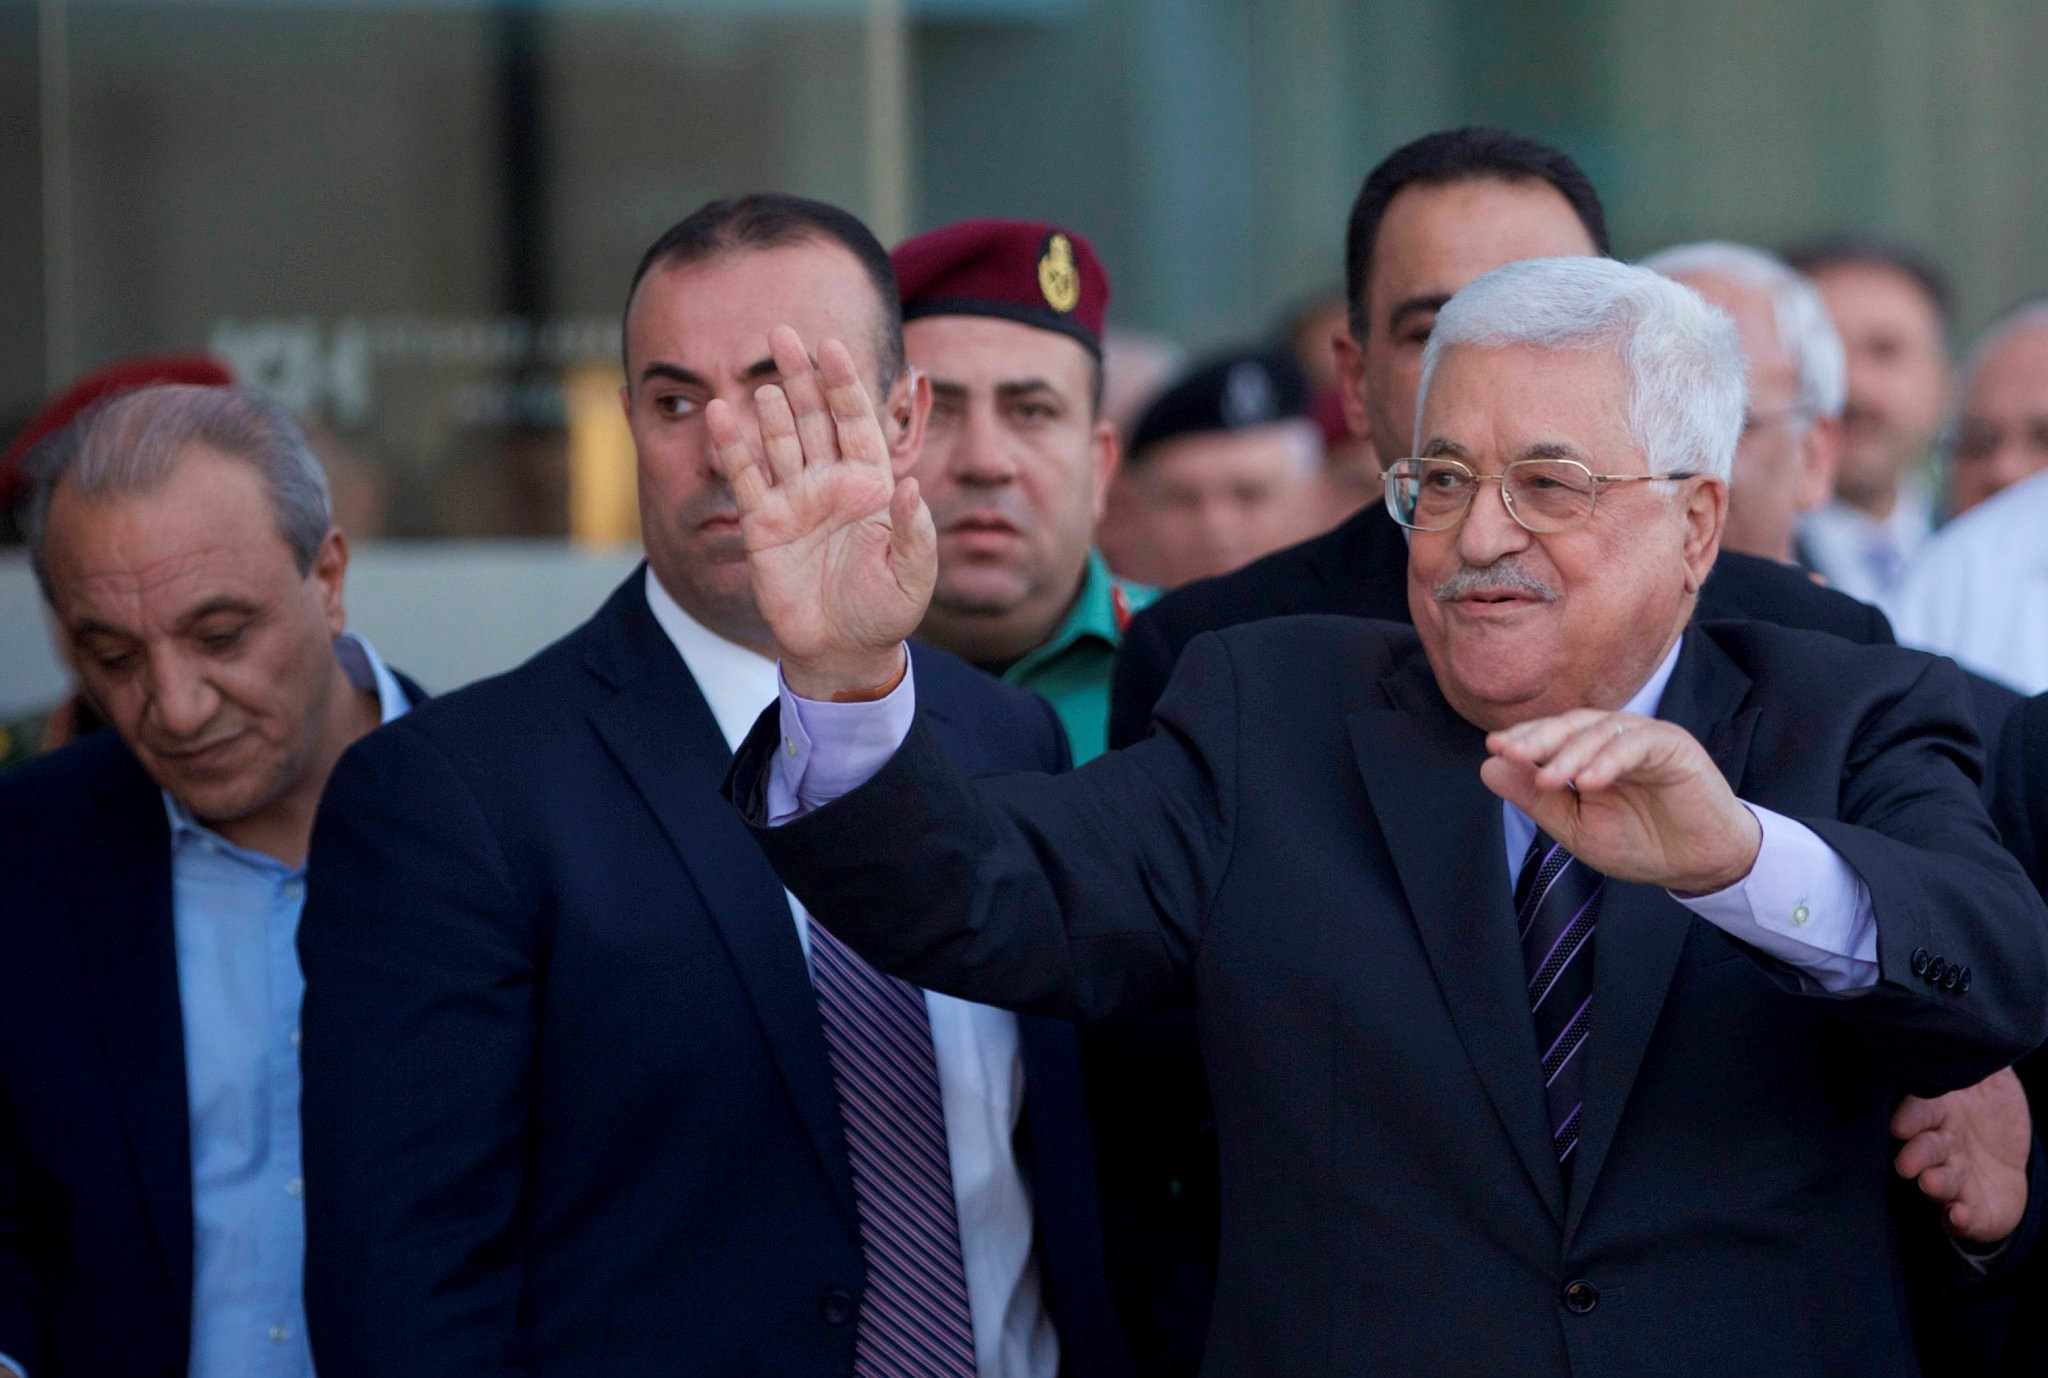 Palestinian President Mahmoud Abbas waves after leaving the hospital in the West Bank city of Ramallah, October 6, 2016. (REUTERS Photo)